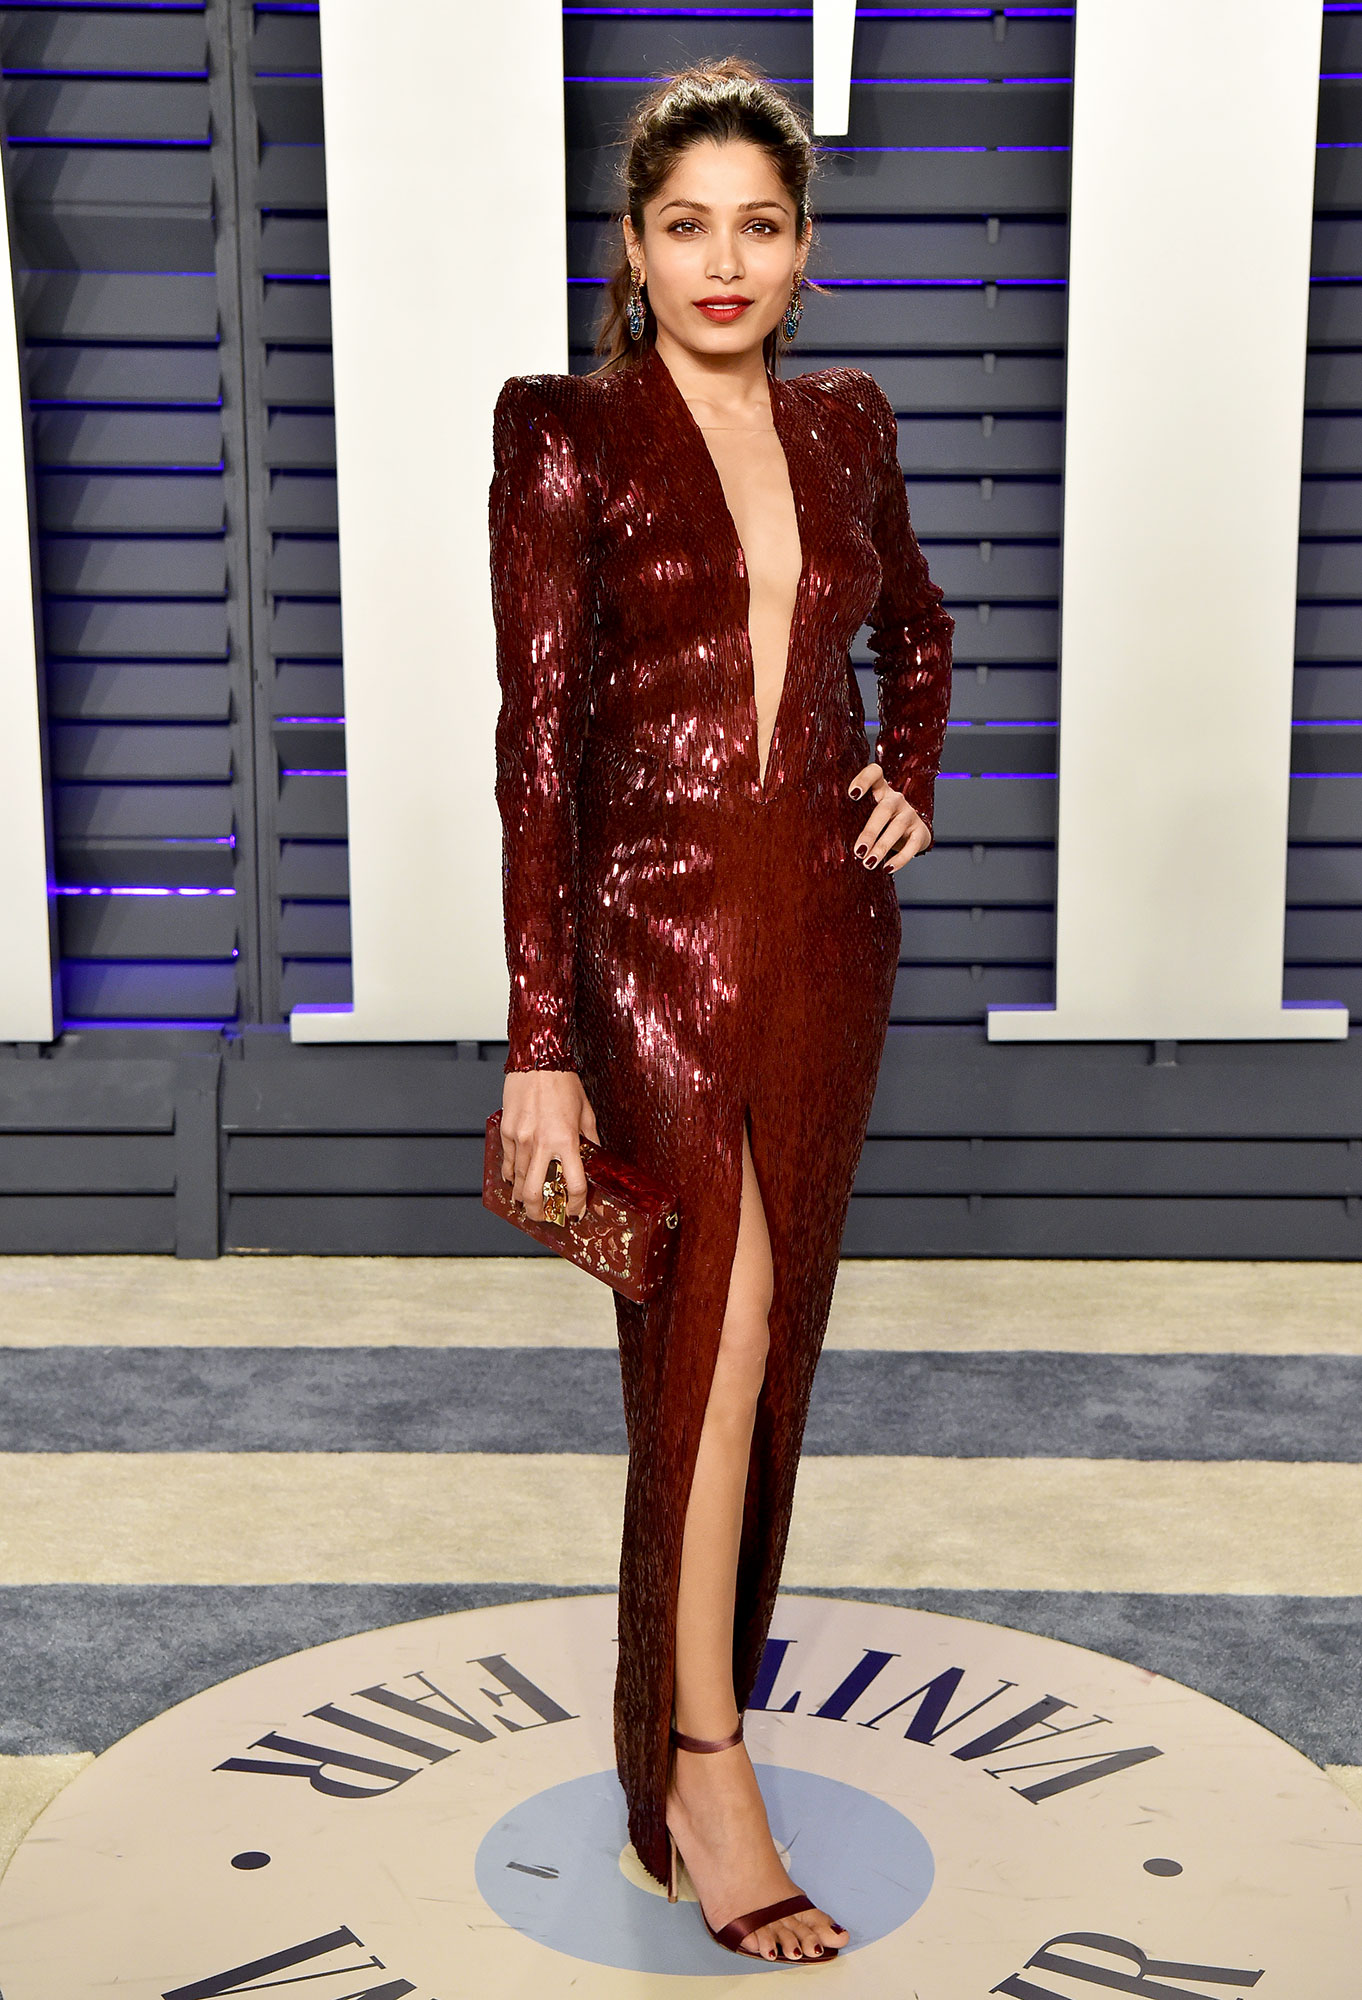 Stylish Burgundy Freida Pinto - In a low-cut Julien Macdonald on Feb. 24.